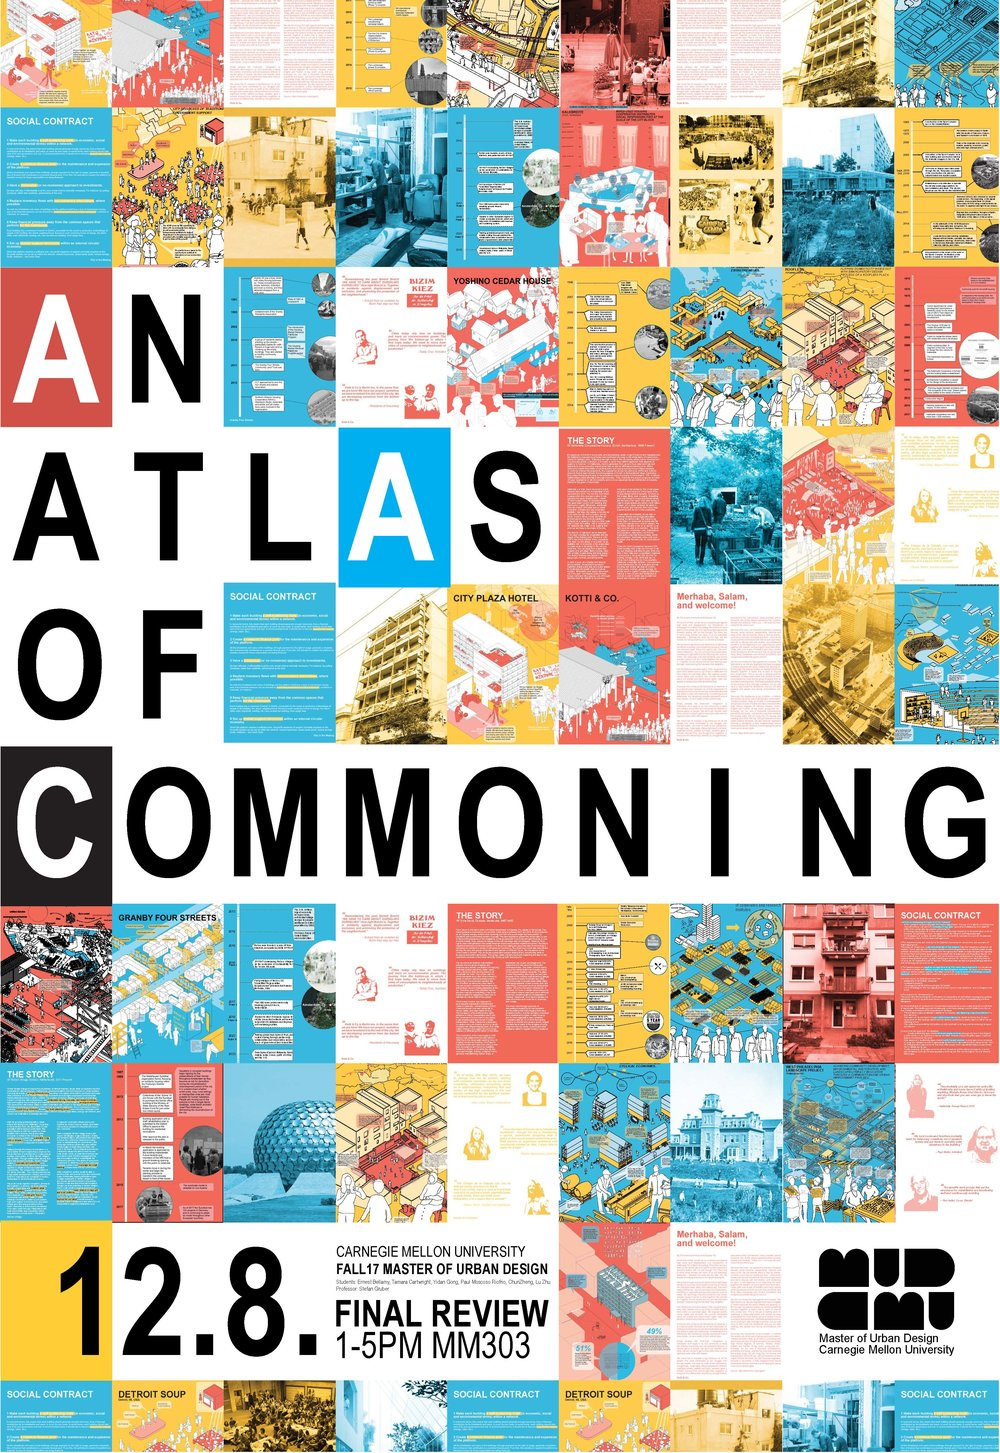 AN ATLAS OF COMMONING_POSTER-s.jpg